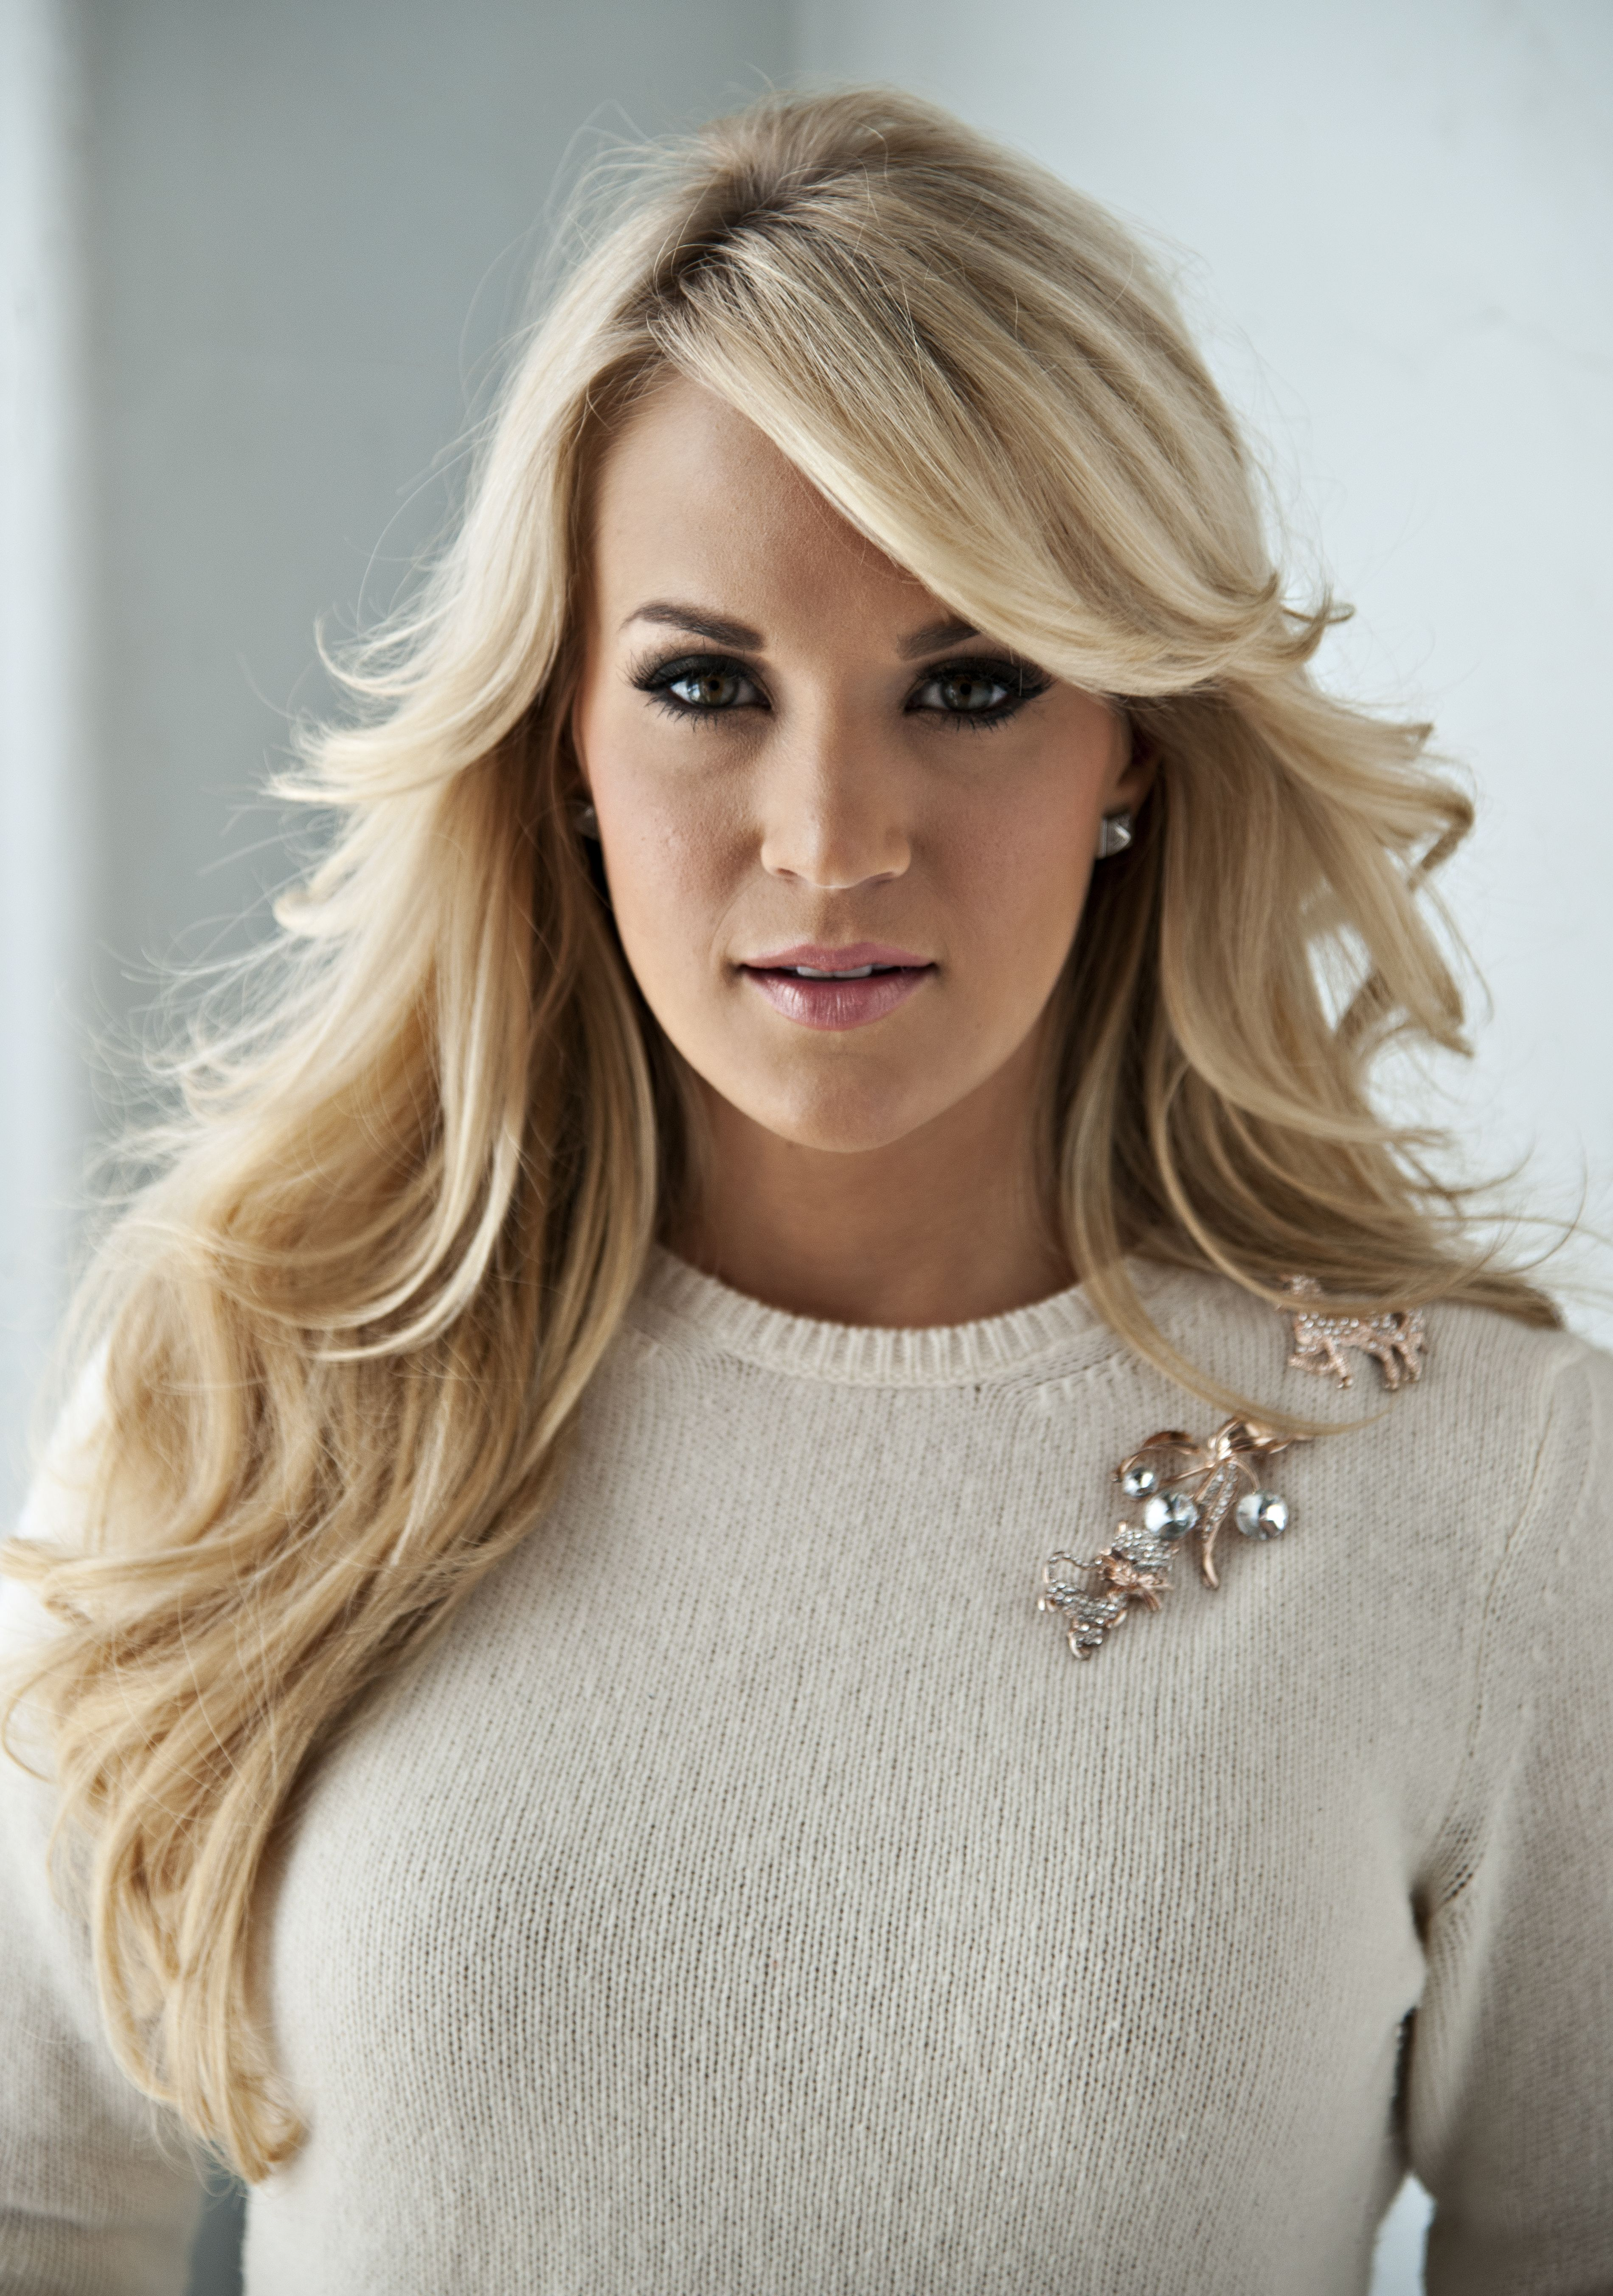 Discussion on this topic: Carrie Underwood Layered Hairstyle with Side Swept , carrie-underwood-layered-hairstyle-with-side-swept/